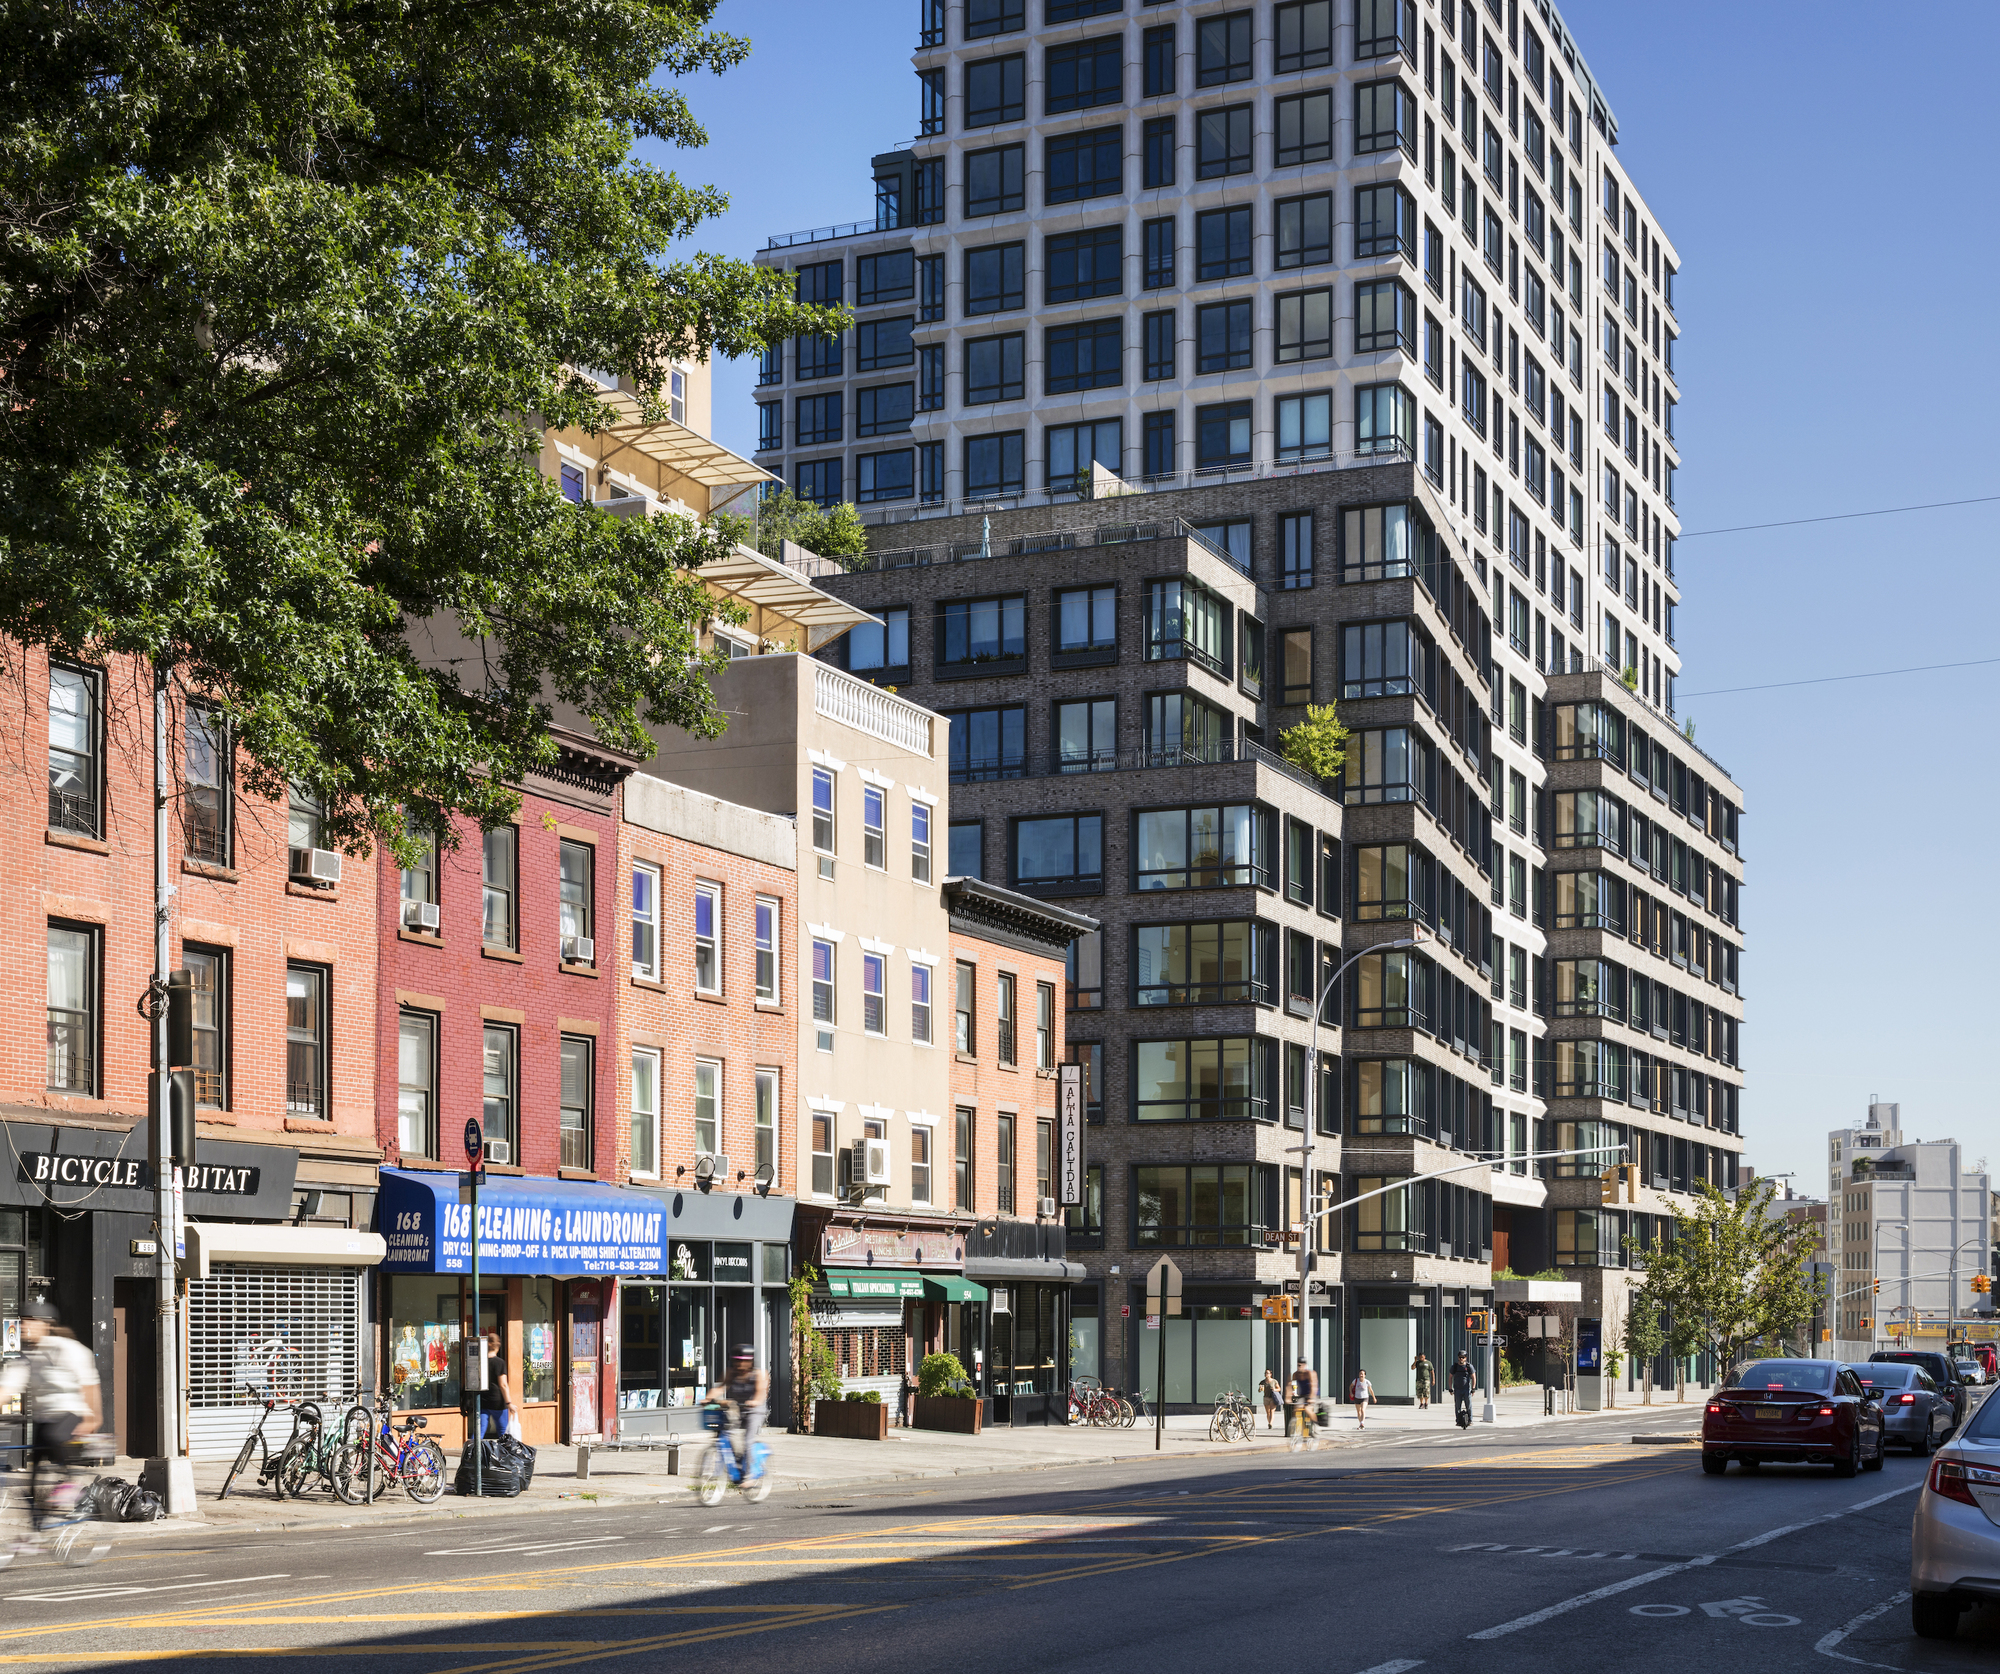 550 Vanderbilt: 550 Vanderbilt Apartments / COOKFOX Architects